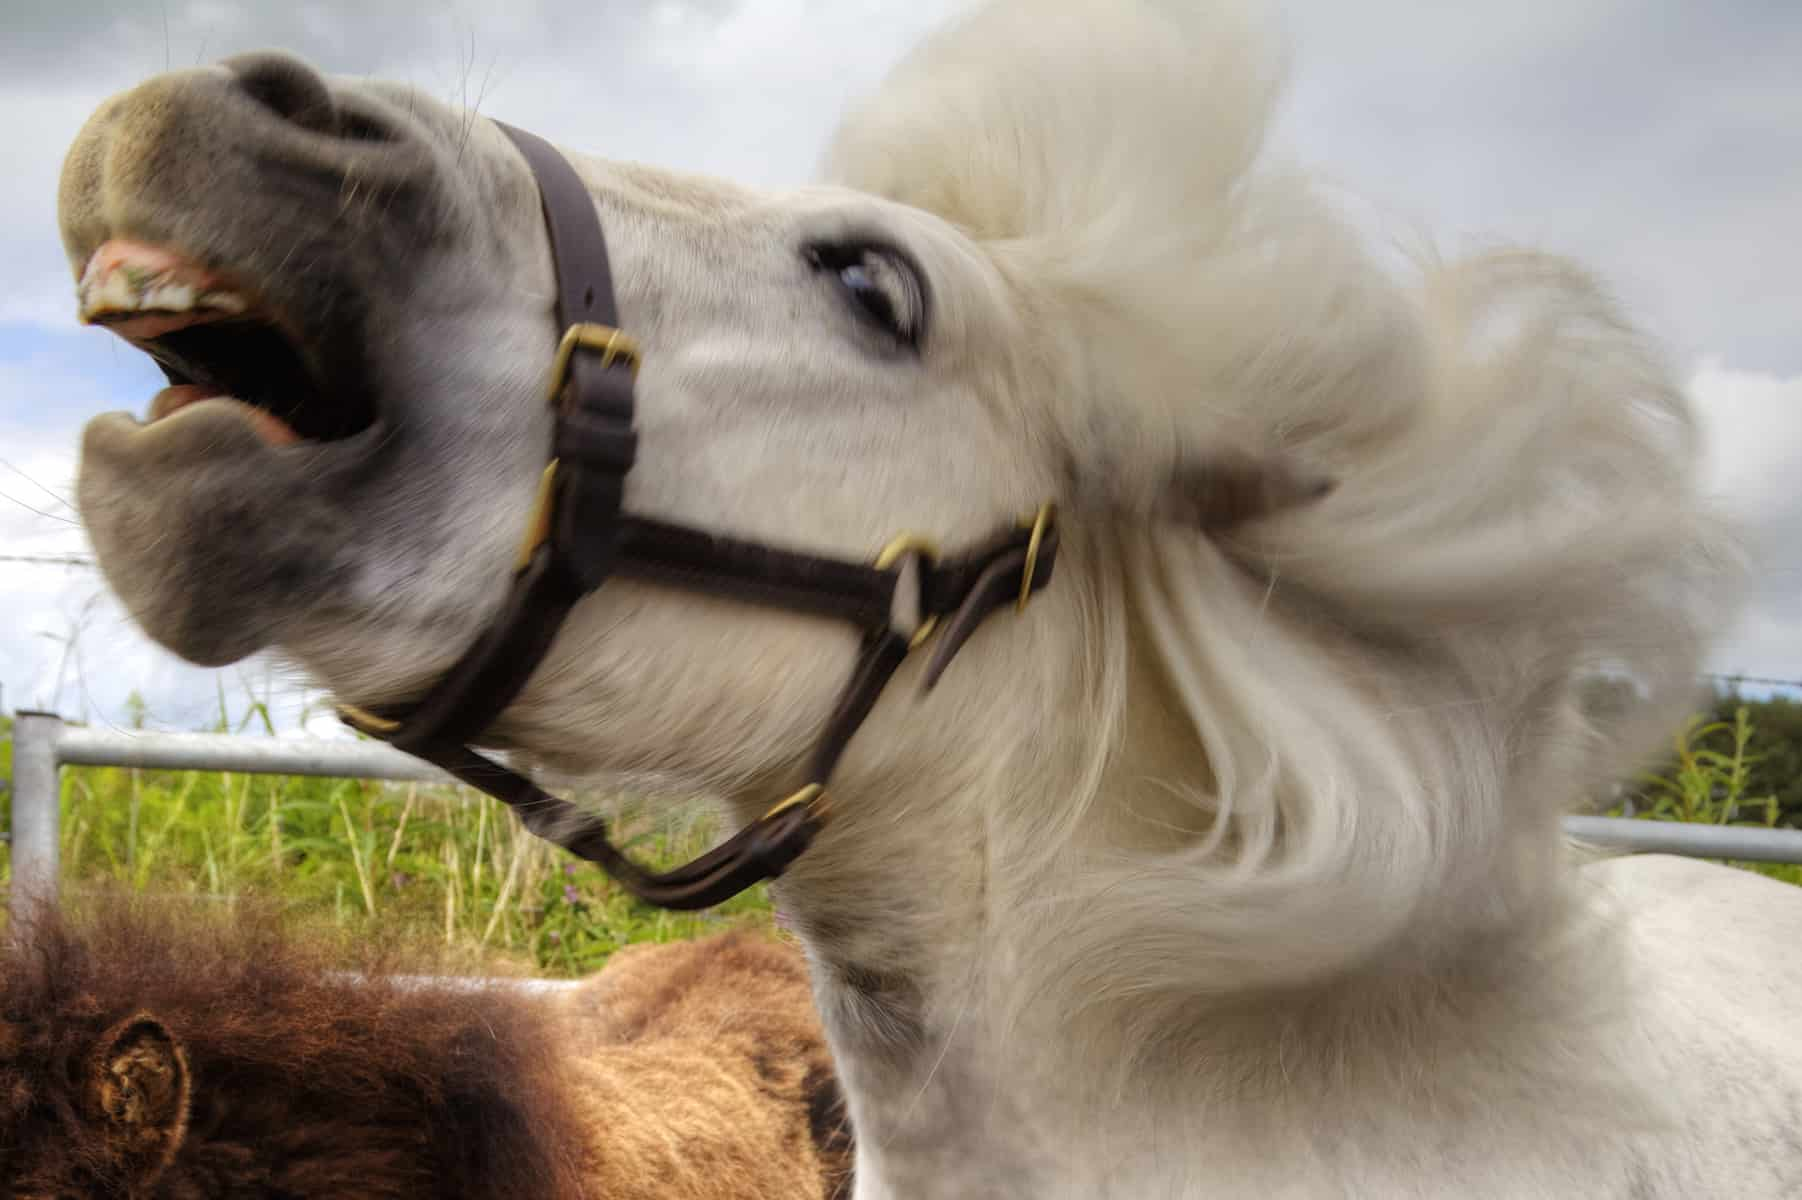 Animal Electrocuted Porn headshaking in horses: a sensitive matter – the horse